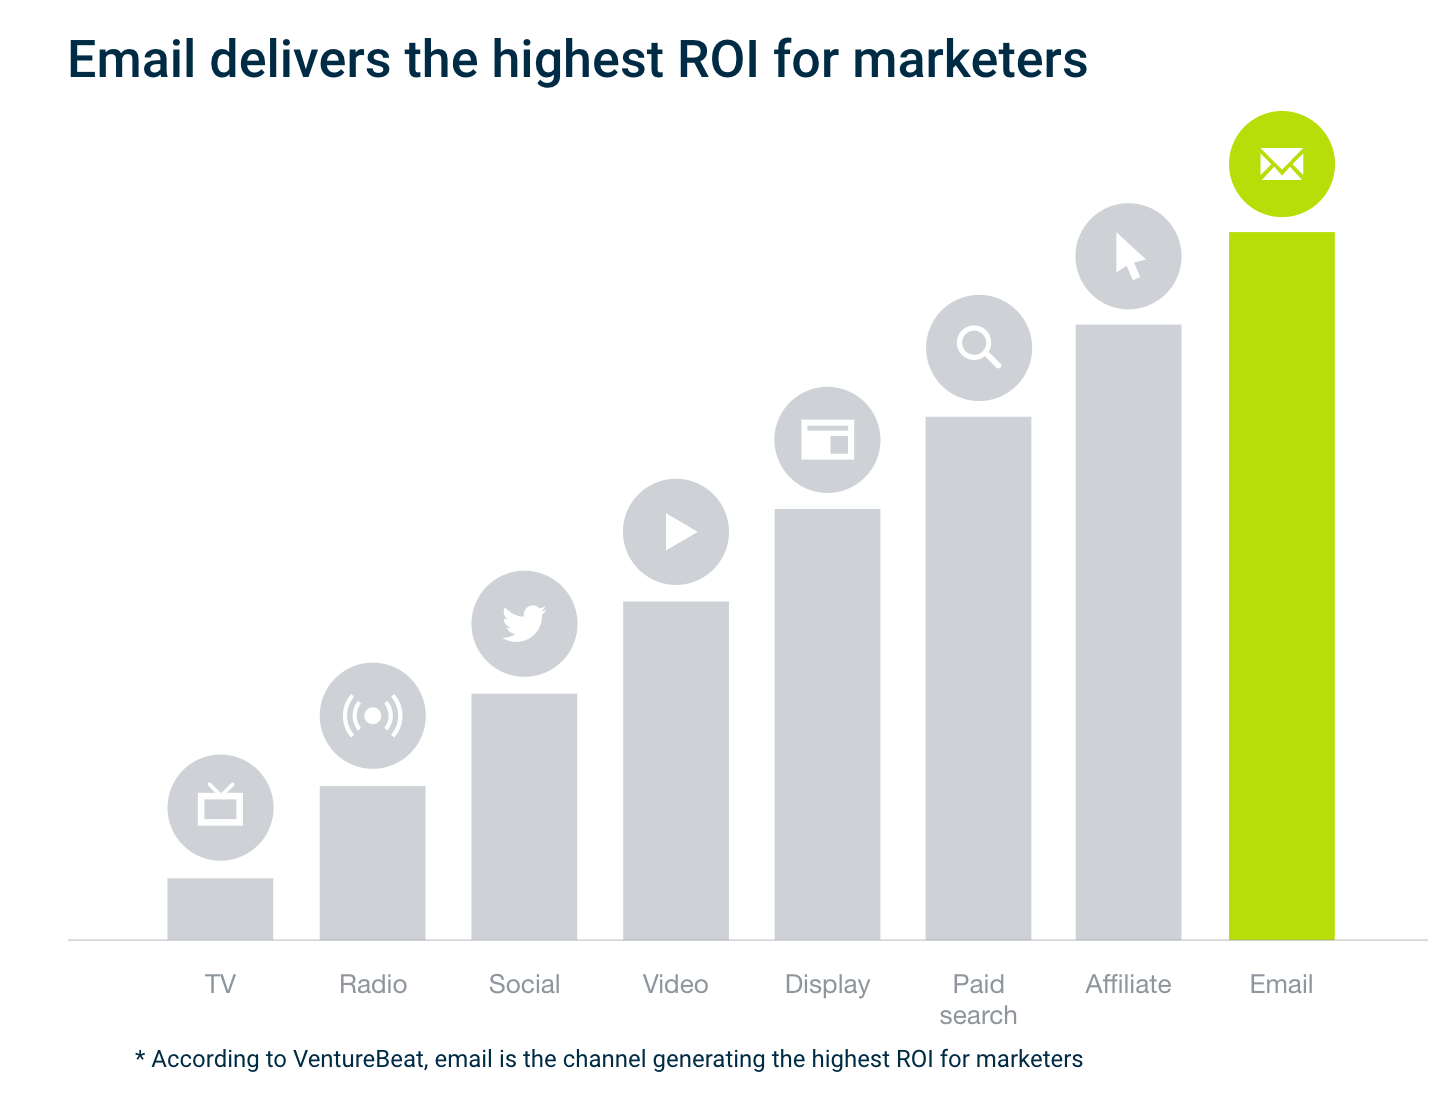 5 Ways Your Competition Uses Salesforce Email Marketing (And How to